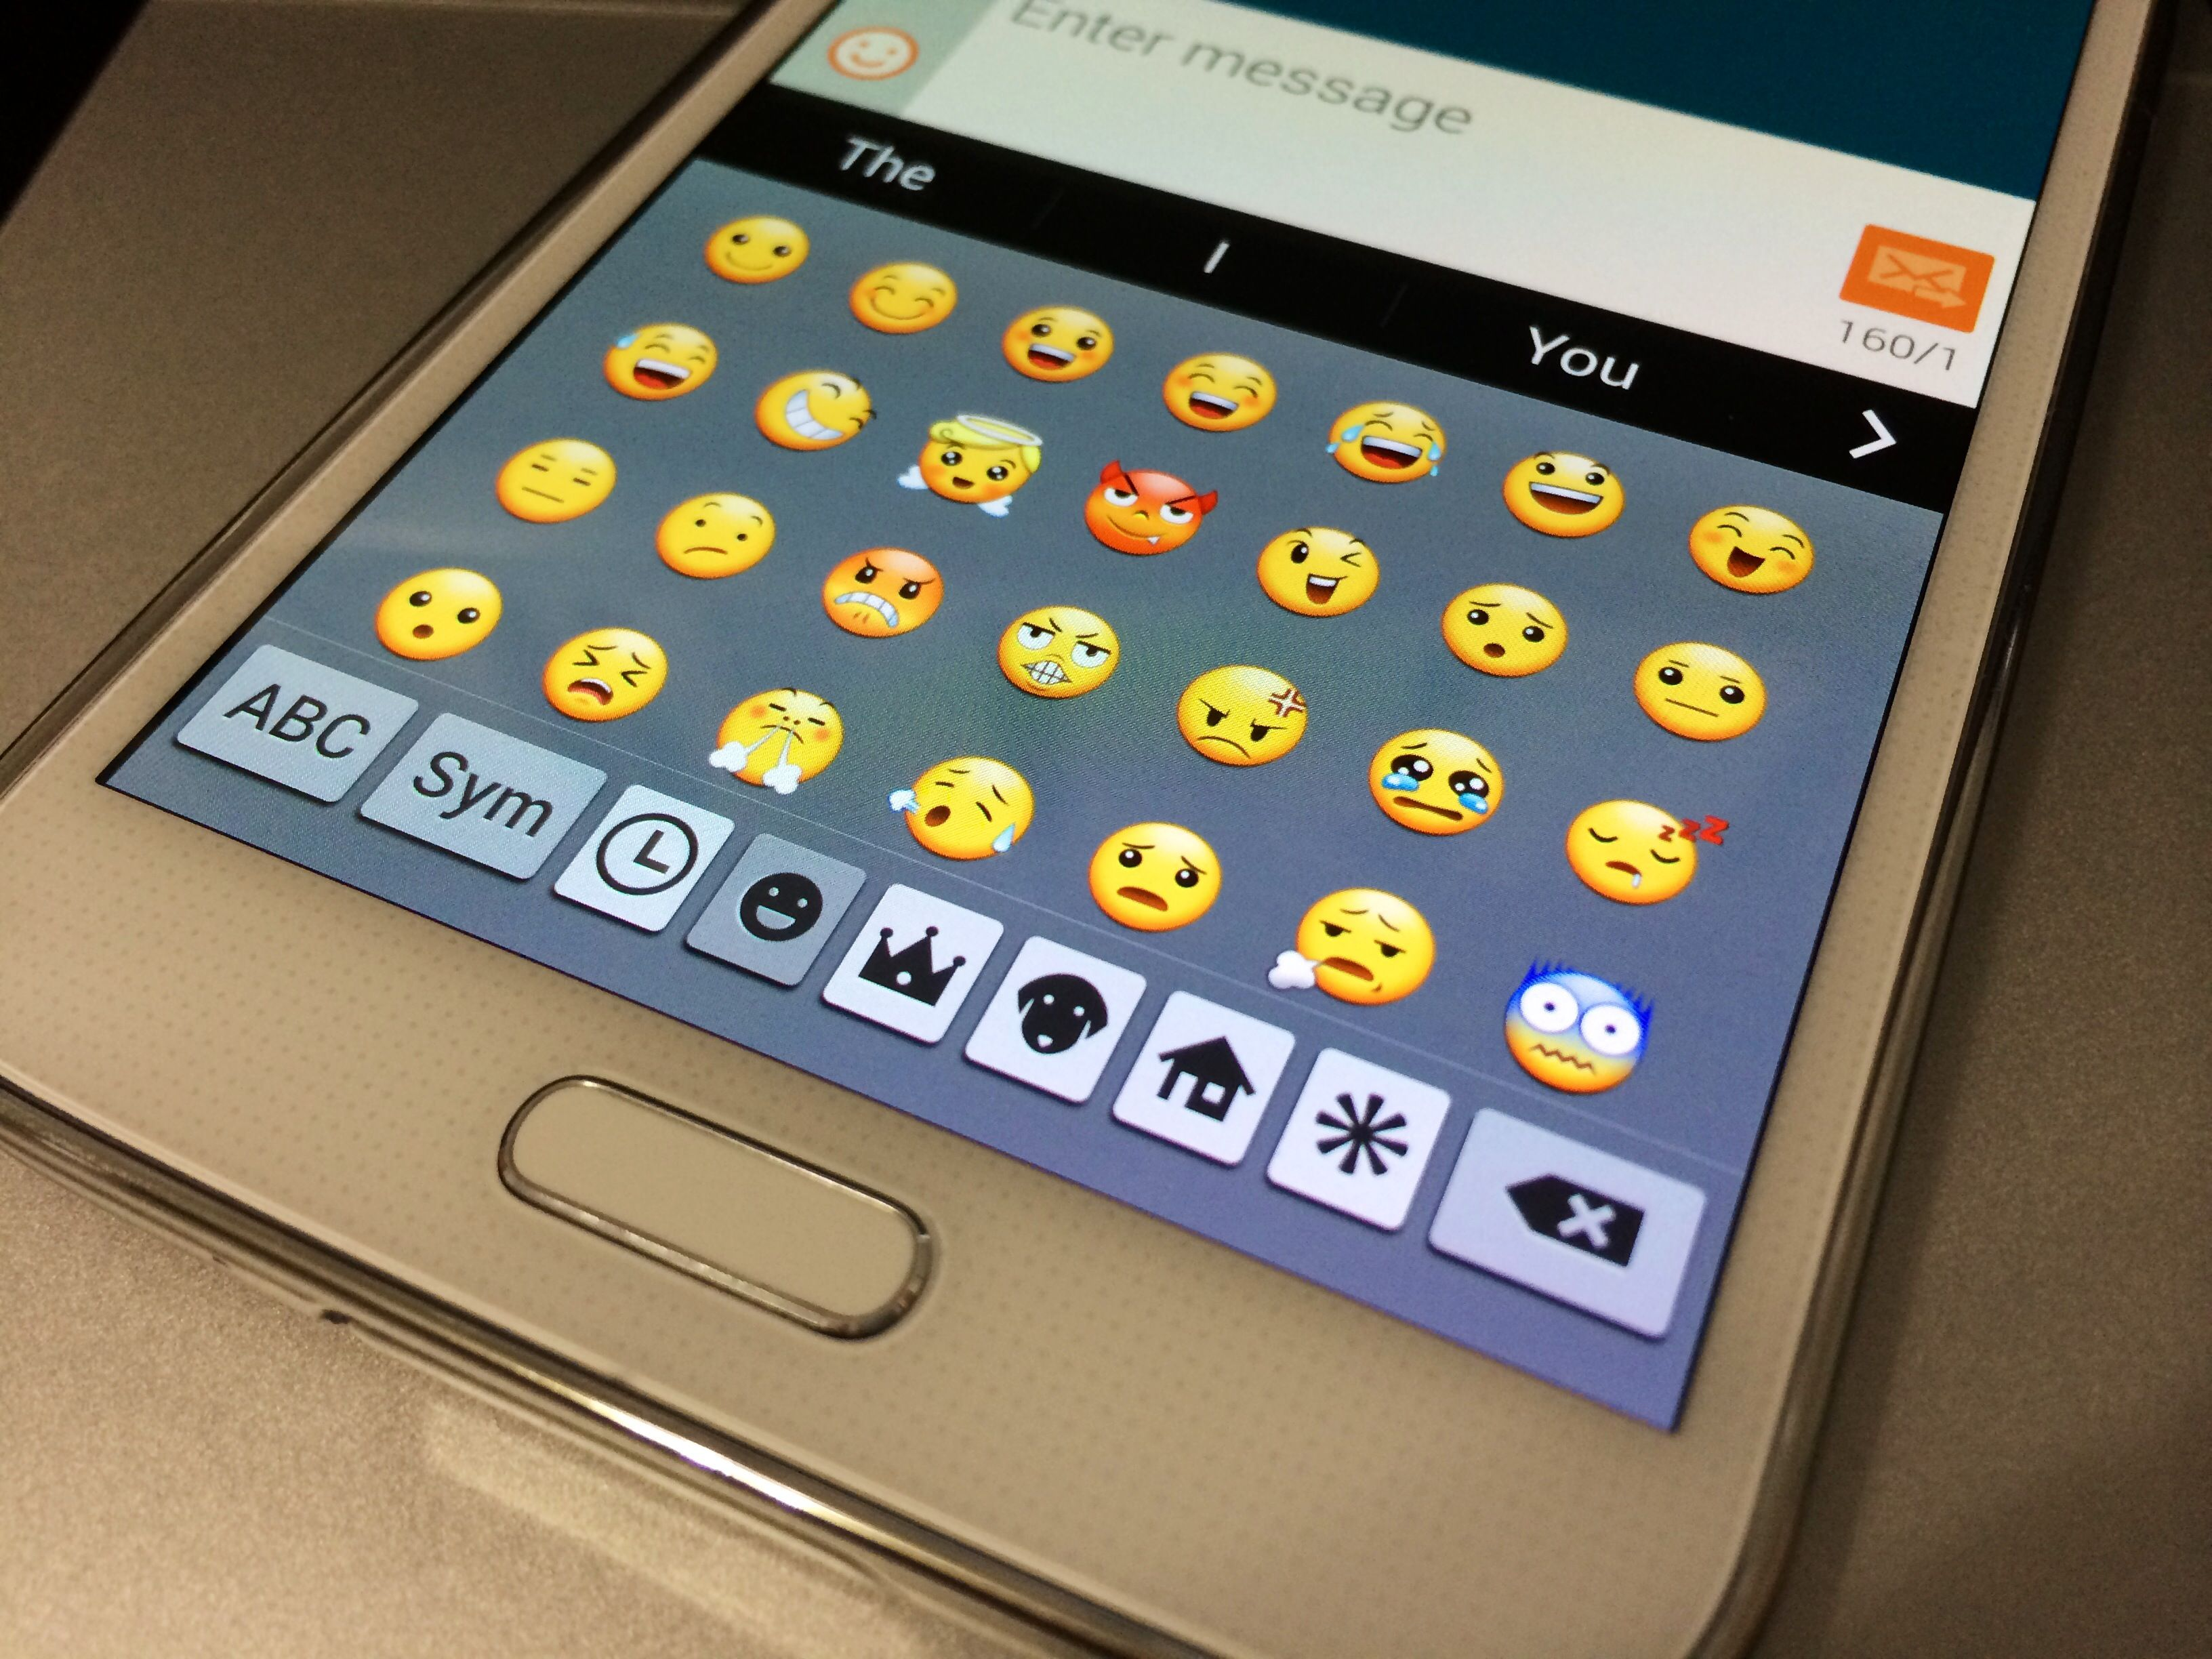 How to use scrapbook on galaxy note 3 - How To Backup Scrapbook Note 3 How To Use Emoji On The Galaxy S5 Galaxy